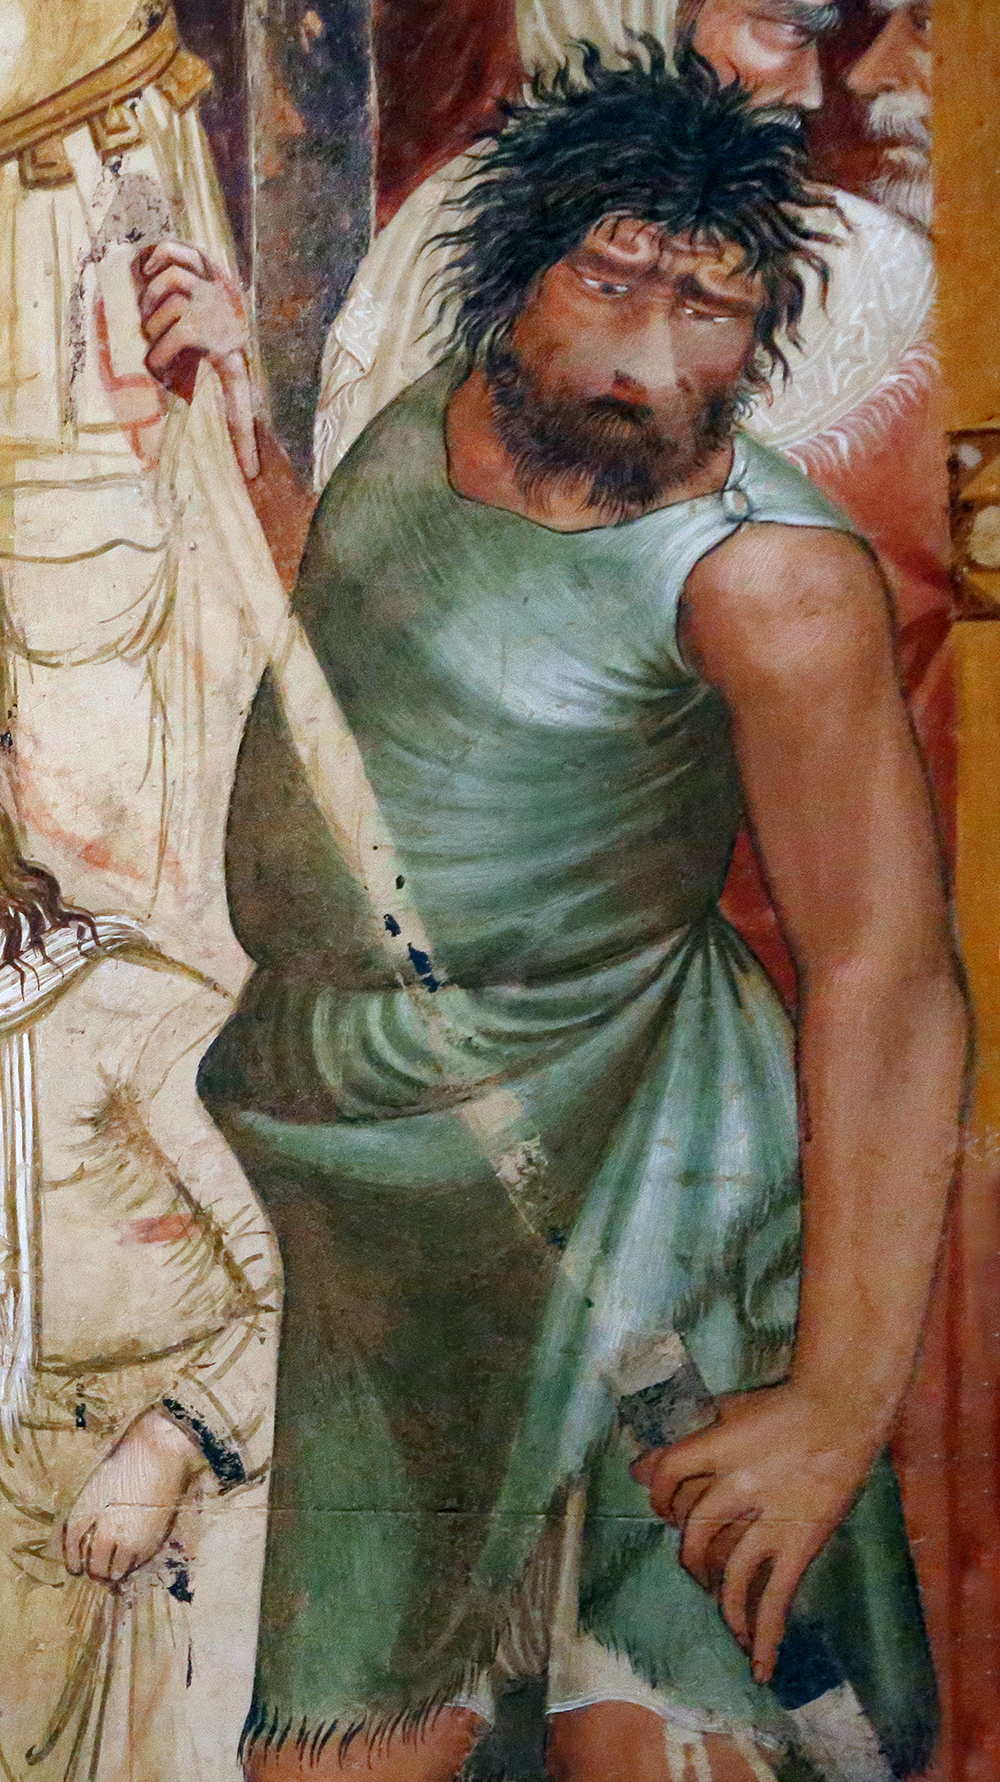 Detail of an executioner from The Martyrdom of the Franciscans, fresco by Ambrogio Lorenzetti, c. 1330. Photograph by Saliko. Wikimedia Commons.